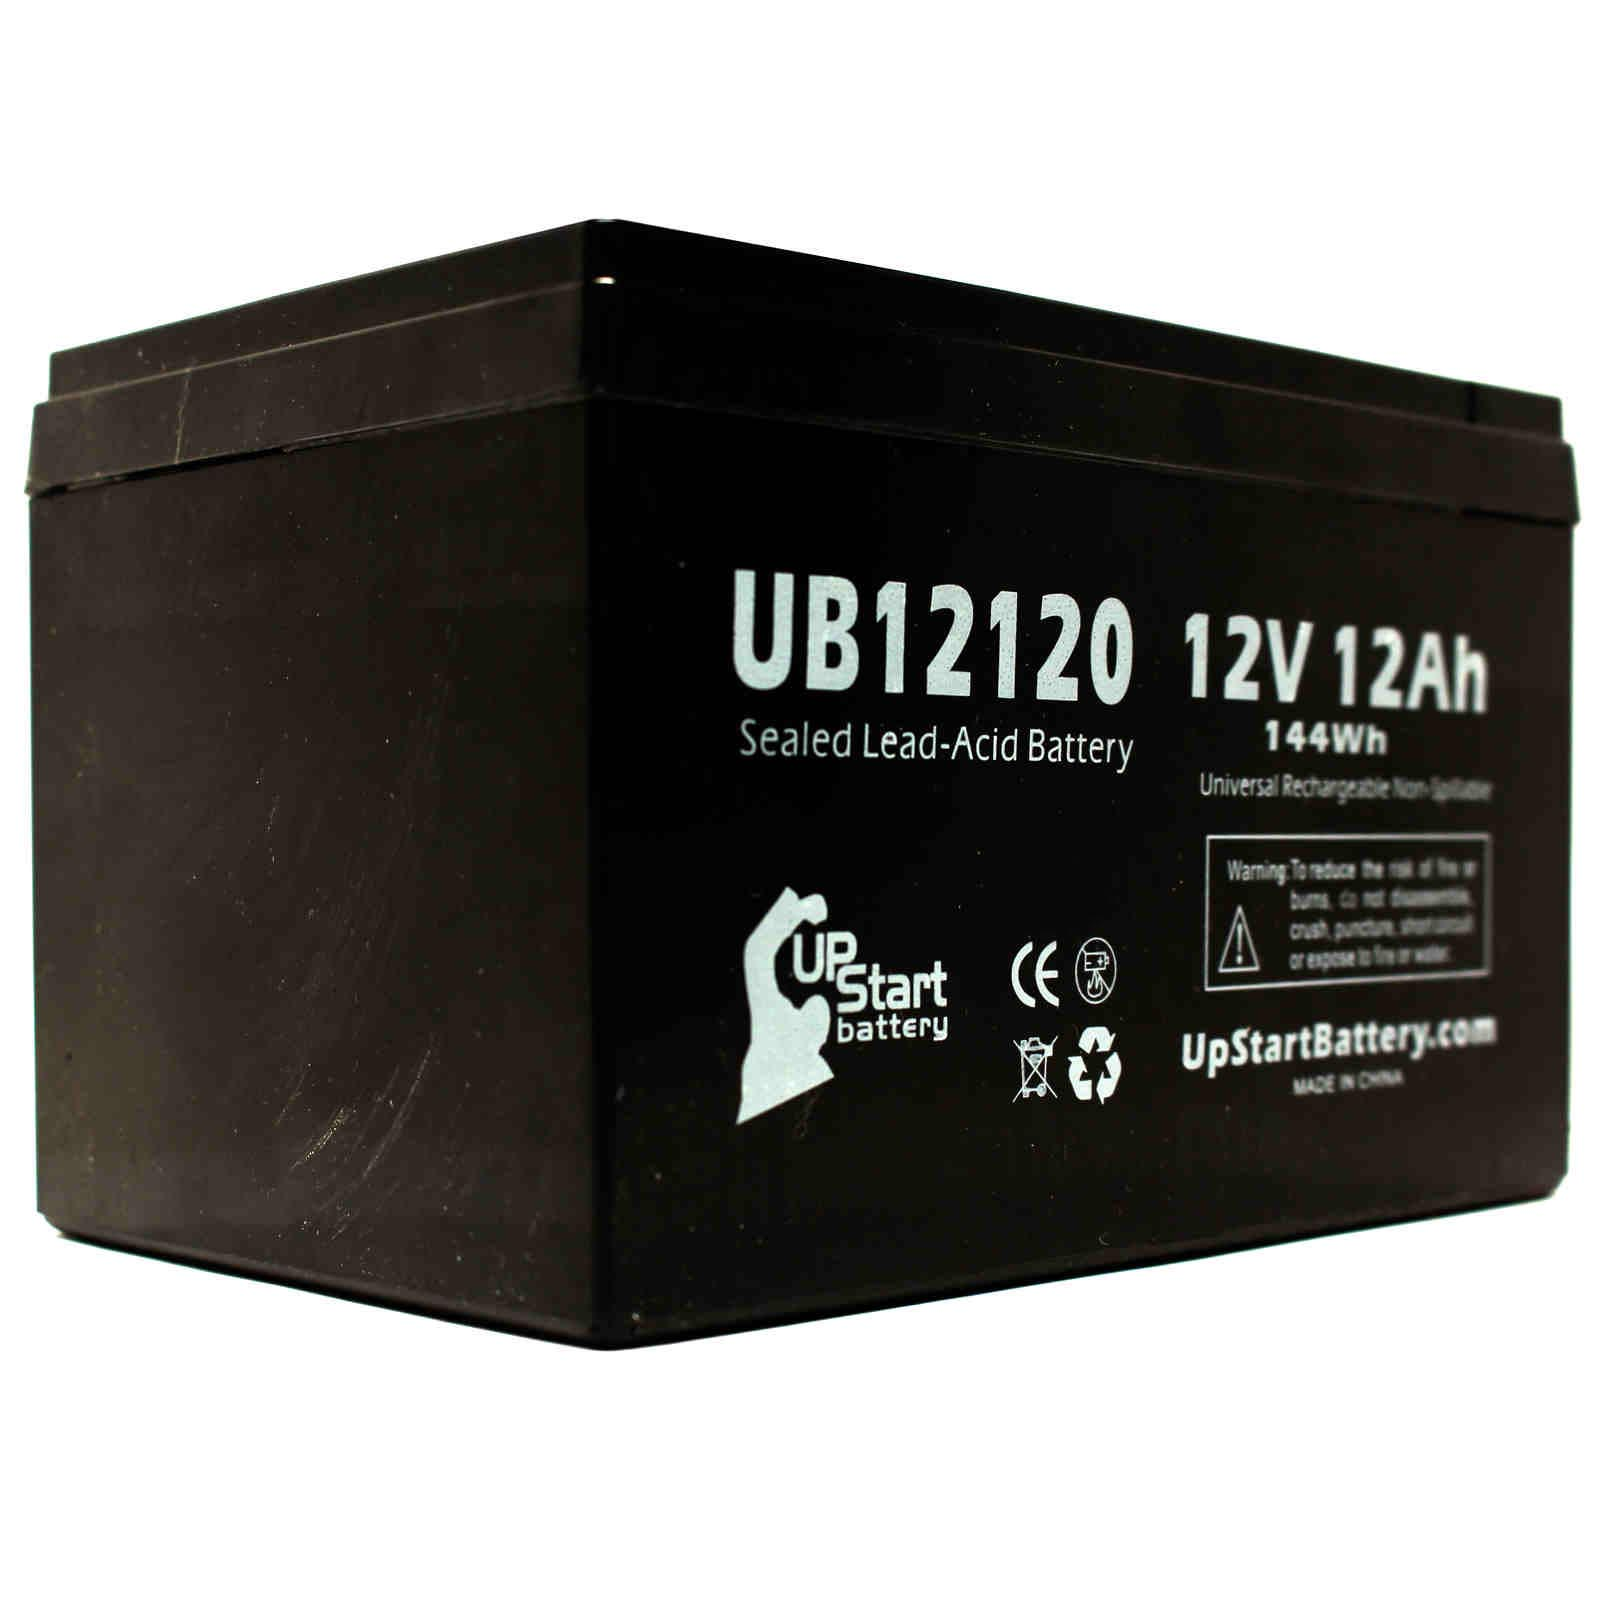 3x Pack - APC SMART-UPS SC 620VA Battery Replacement - UB12120 Universal Sealed Lead Acid Battery (12V, 12Ah, 12000mAh, F1 Terminal, AGM, SLA) - Includes 6 F1 to F2 Terminal Adapters - image 2 de 4